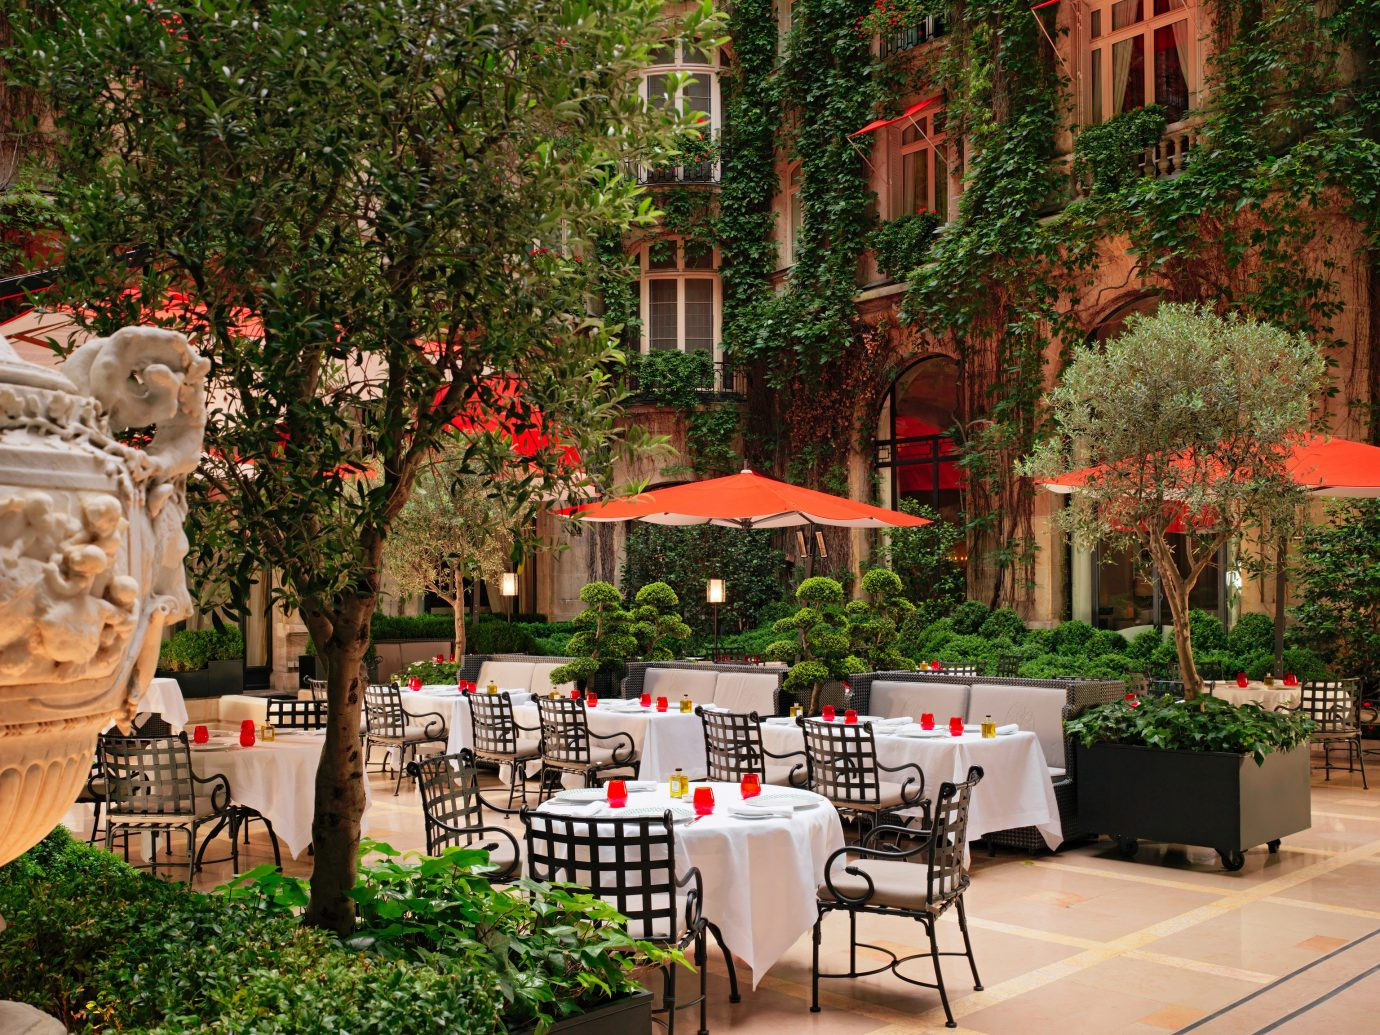 Hotels Luxury Travel tree outdoor floristry Courtyard Garden flower restaurant backyard plaza